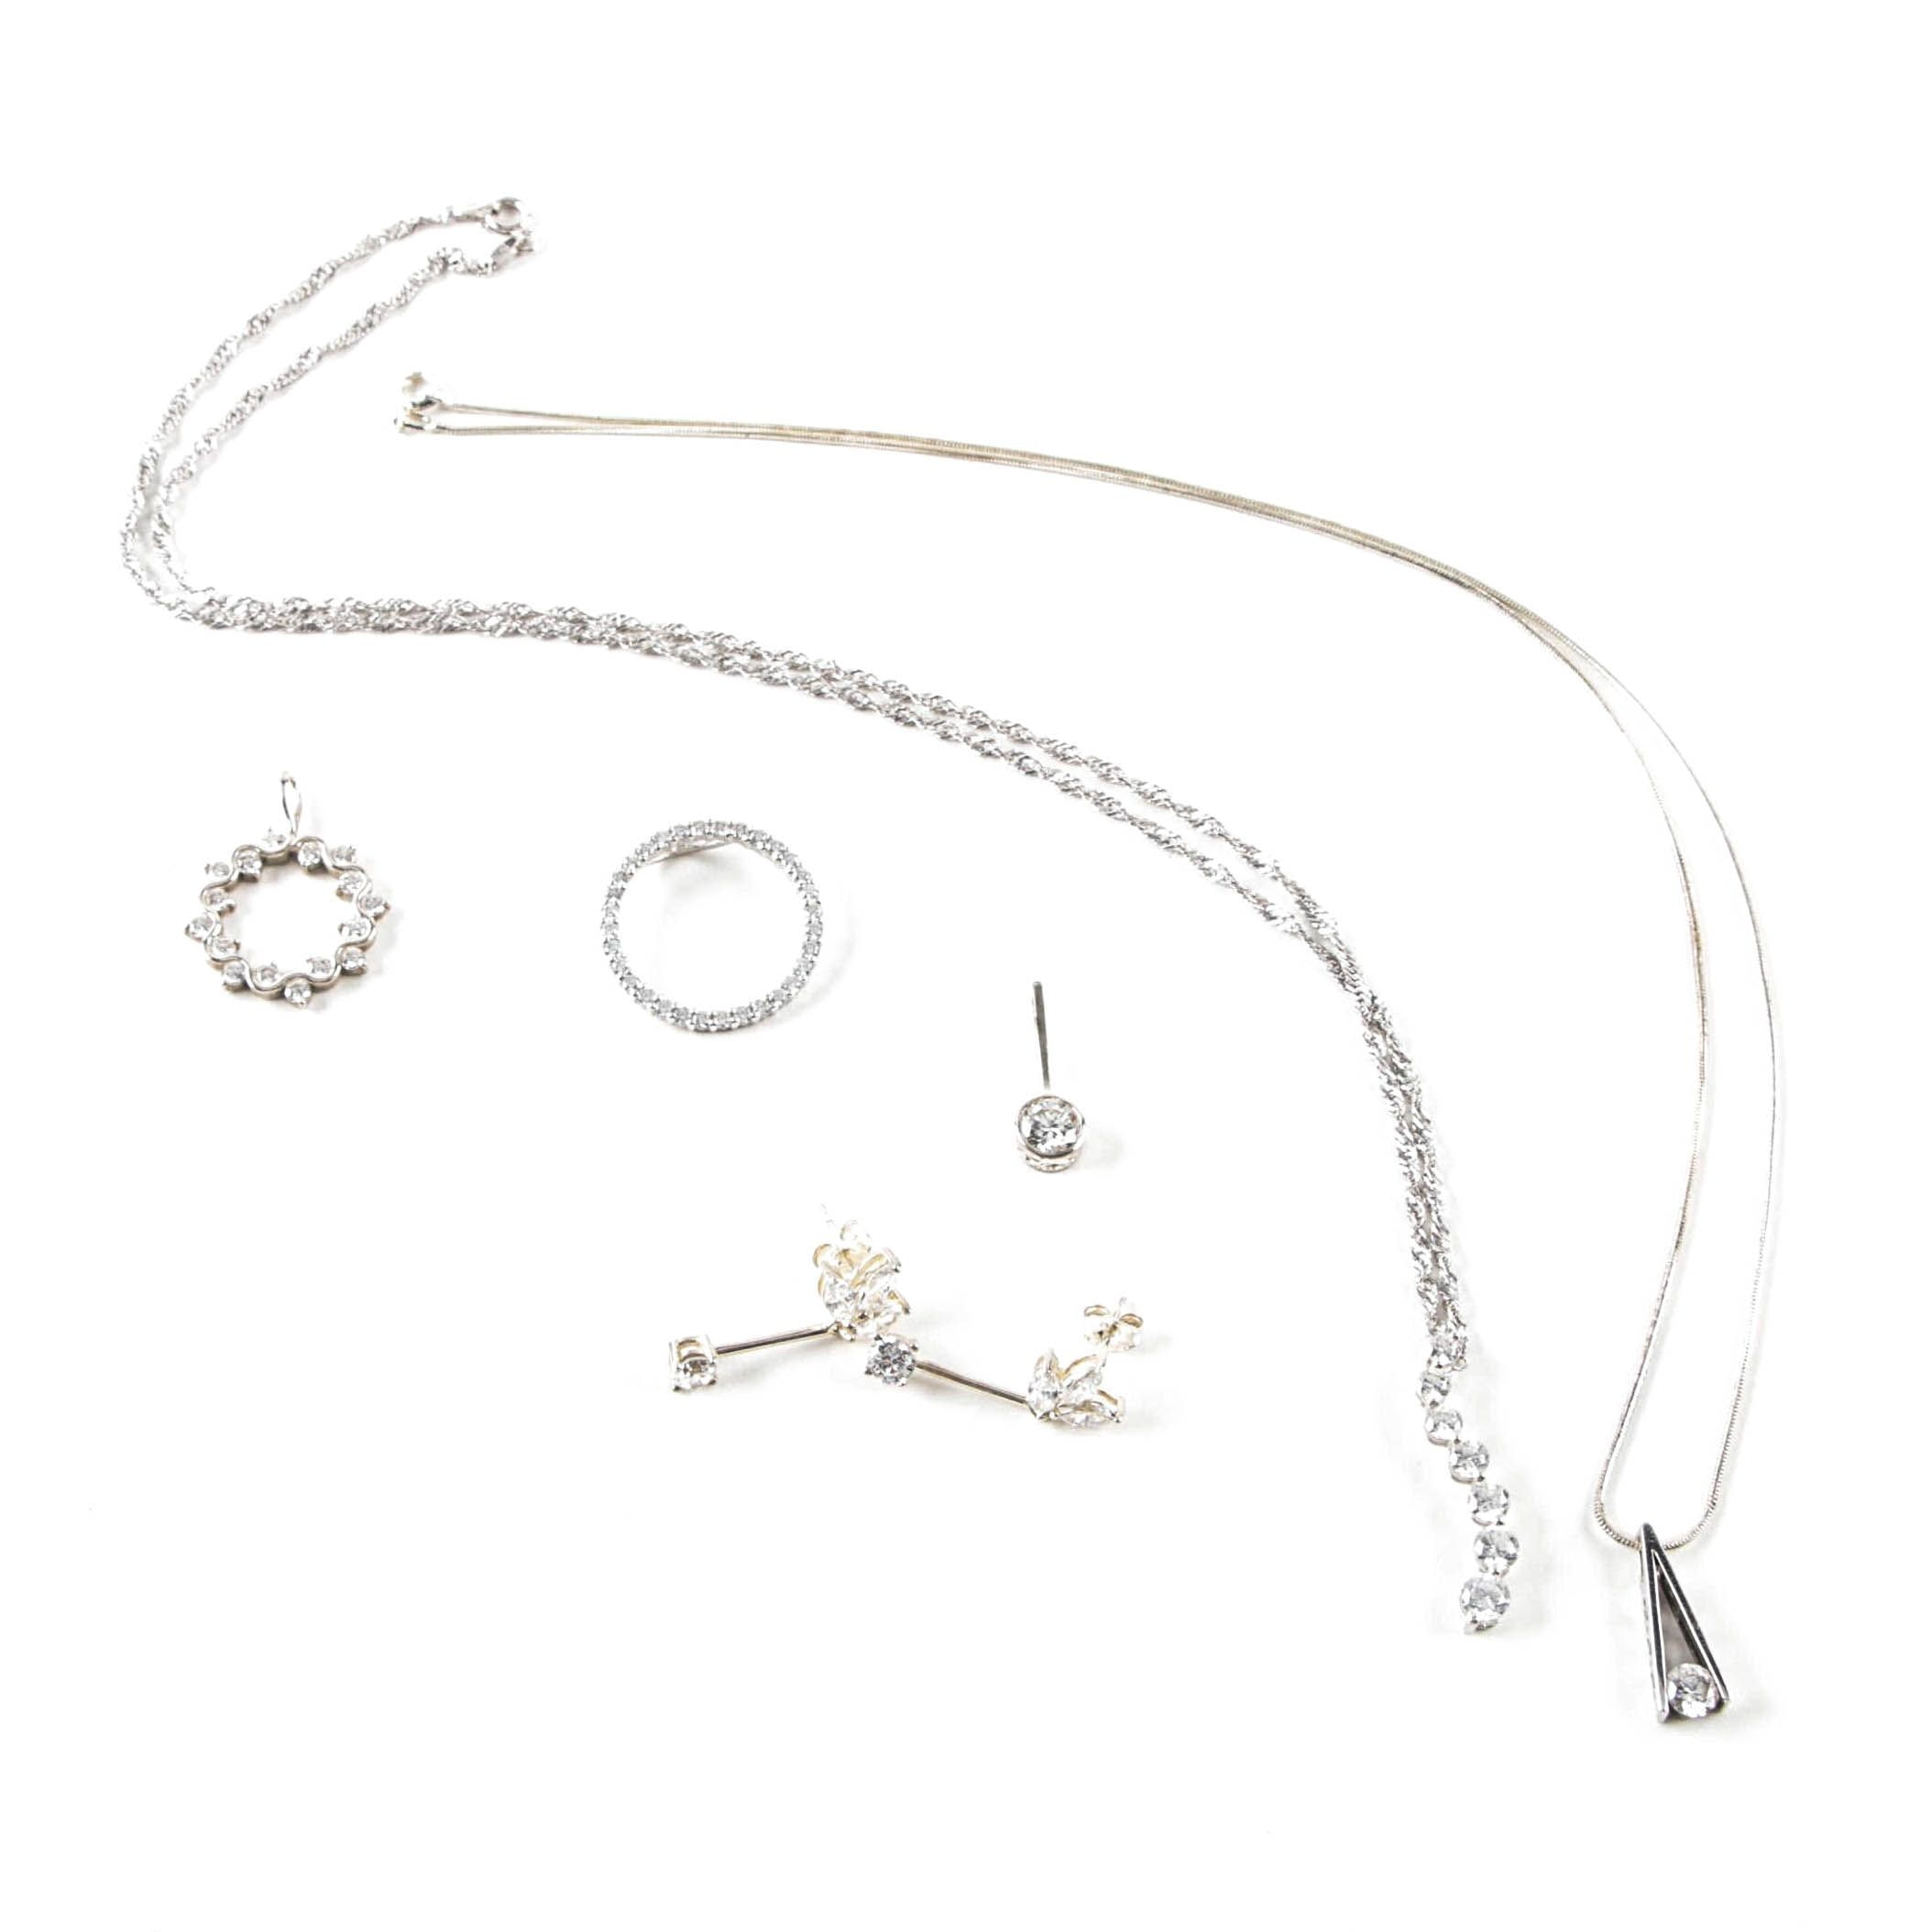 Sterling Silver Cubic Zirconia Necklaces, Pendants and Earrings